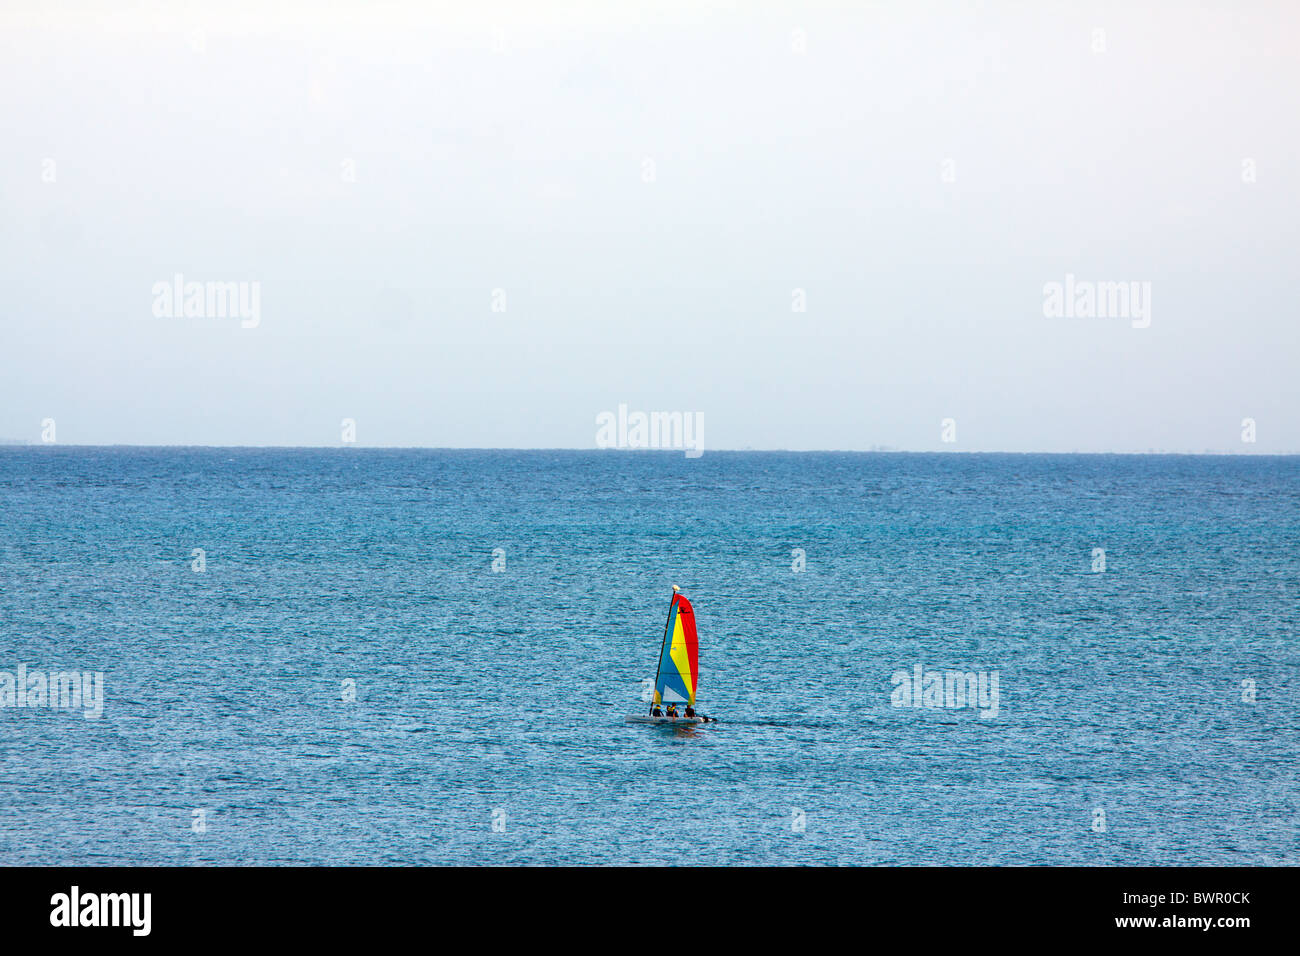 A wind sail is adrift on the ocean off the coast of the Mexican Riviera Maya region. - Stock Image